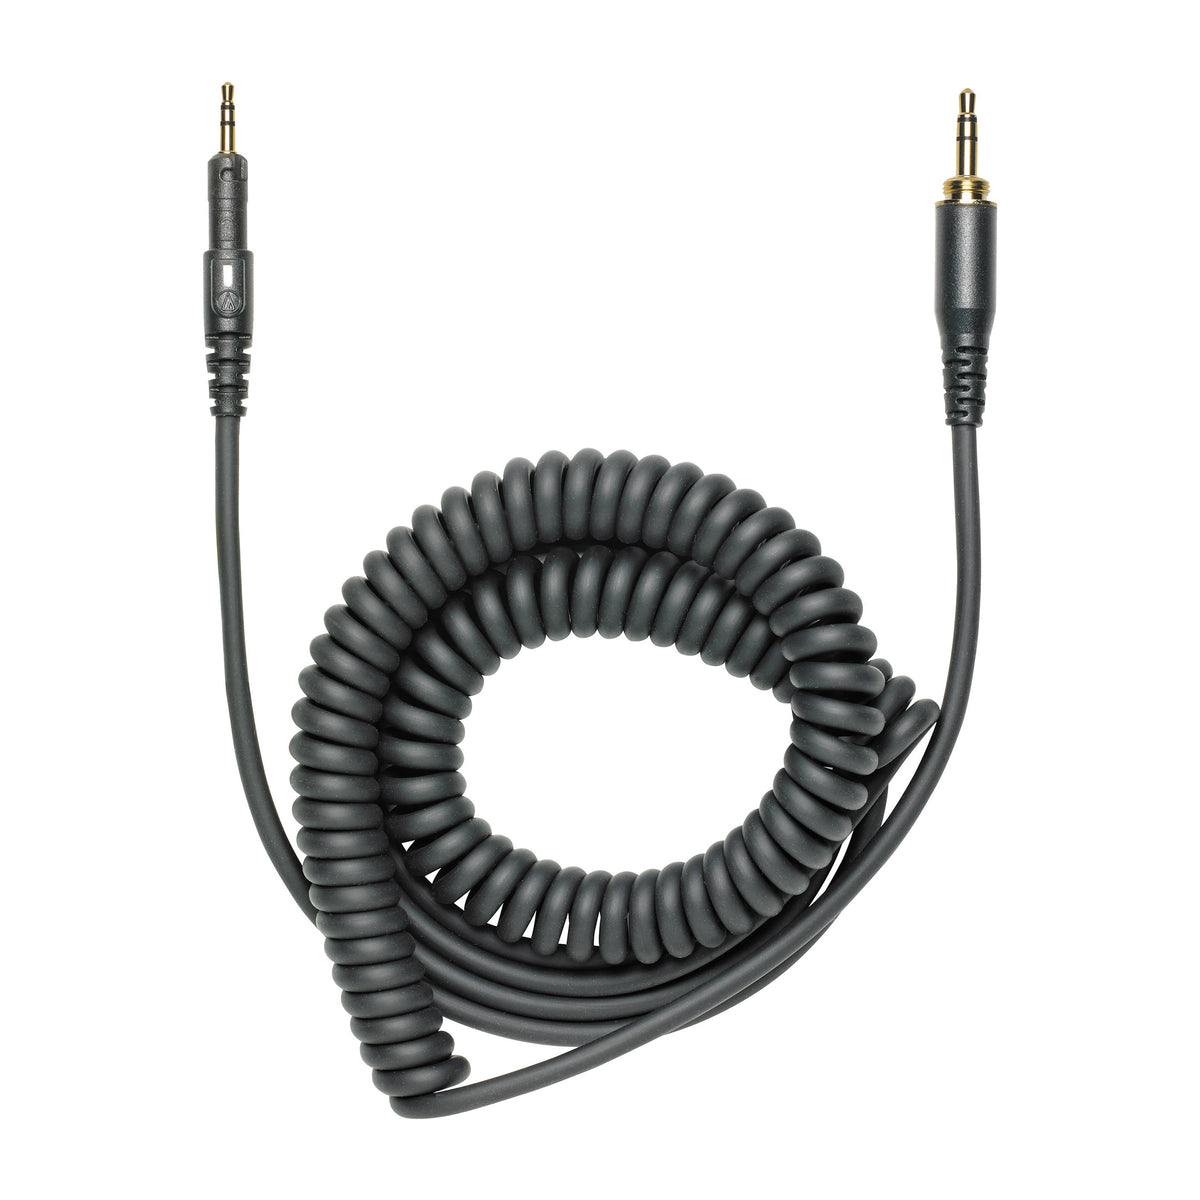 Audio-Technica Pro: HP-CC Replacement Cable for M-Series Headphones